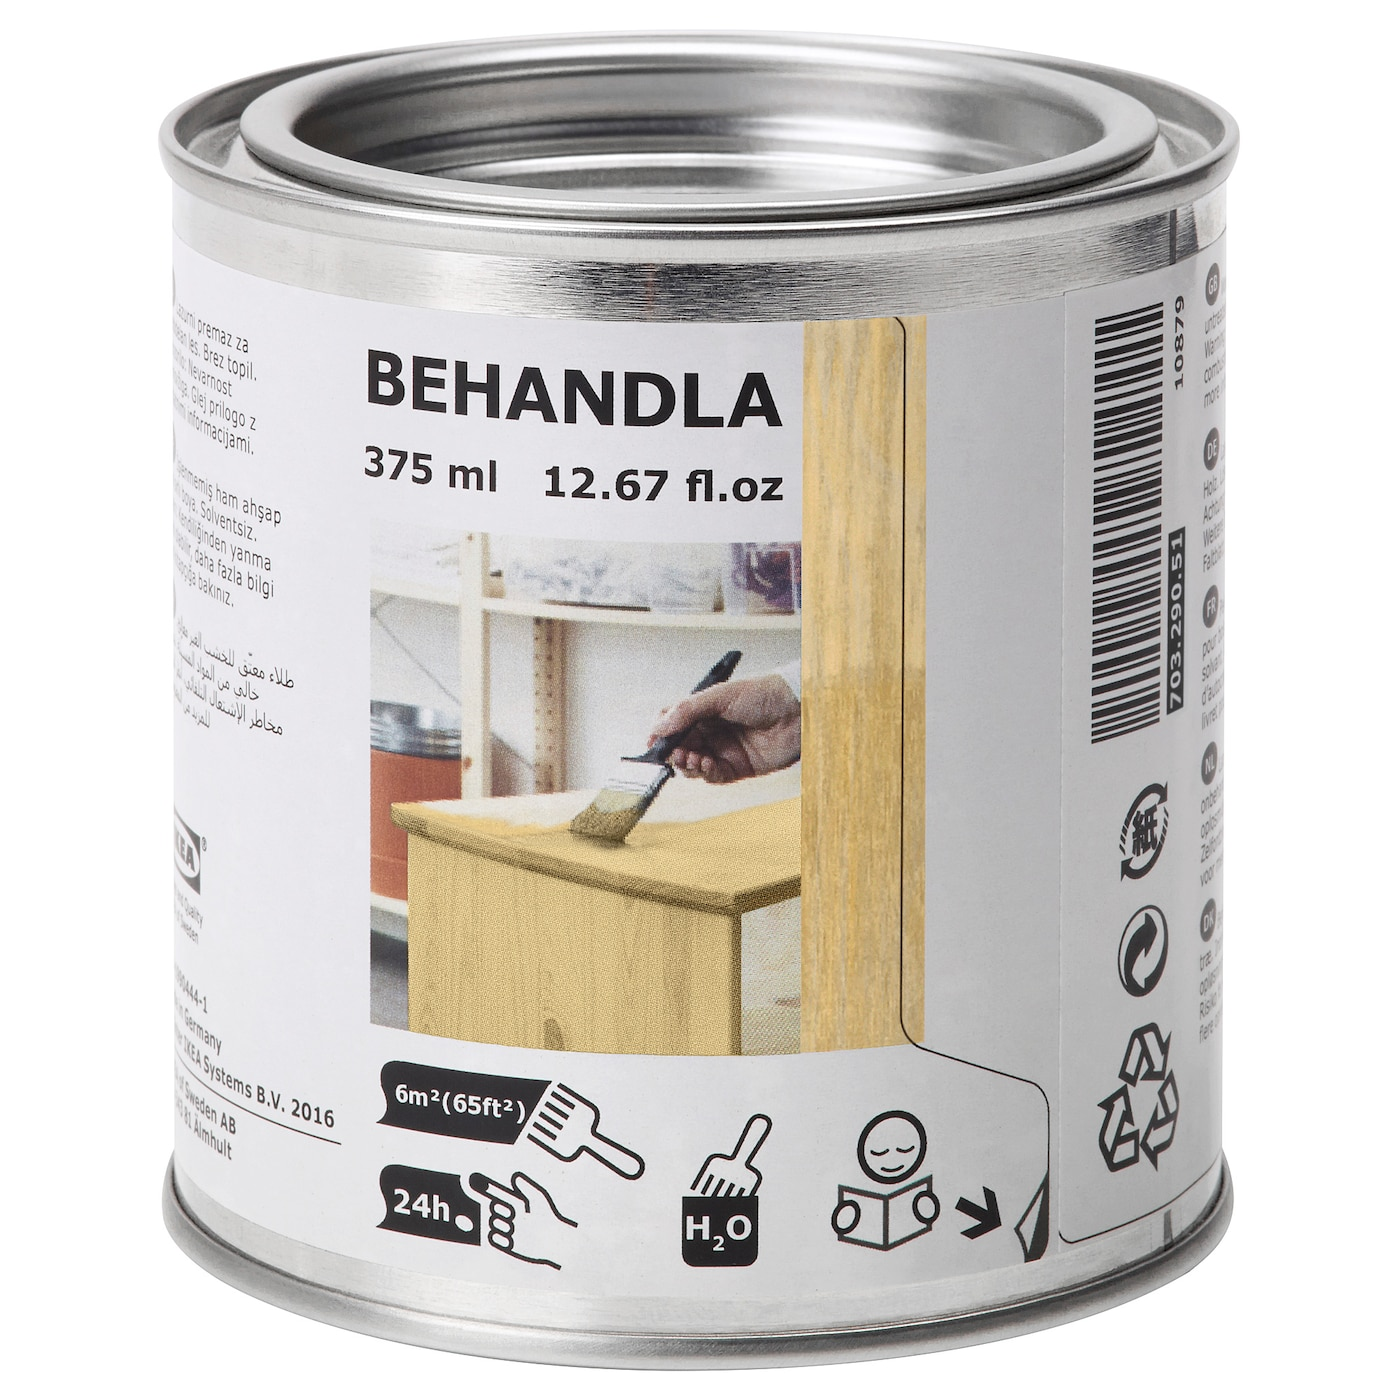 IKEA BEHANDLA beeswax polish Makes the surface of untreated wood more durable and hard-wearing.